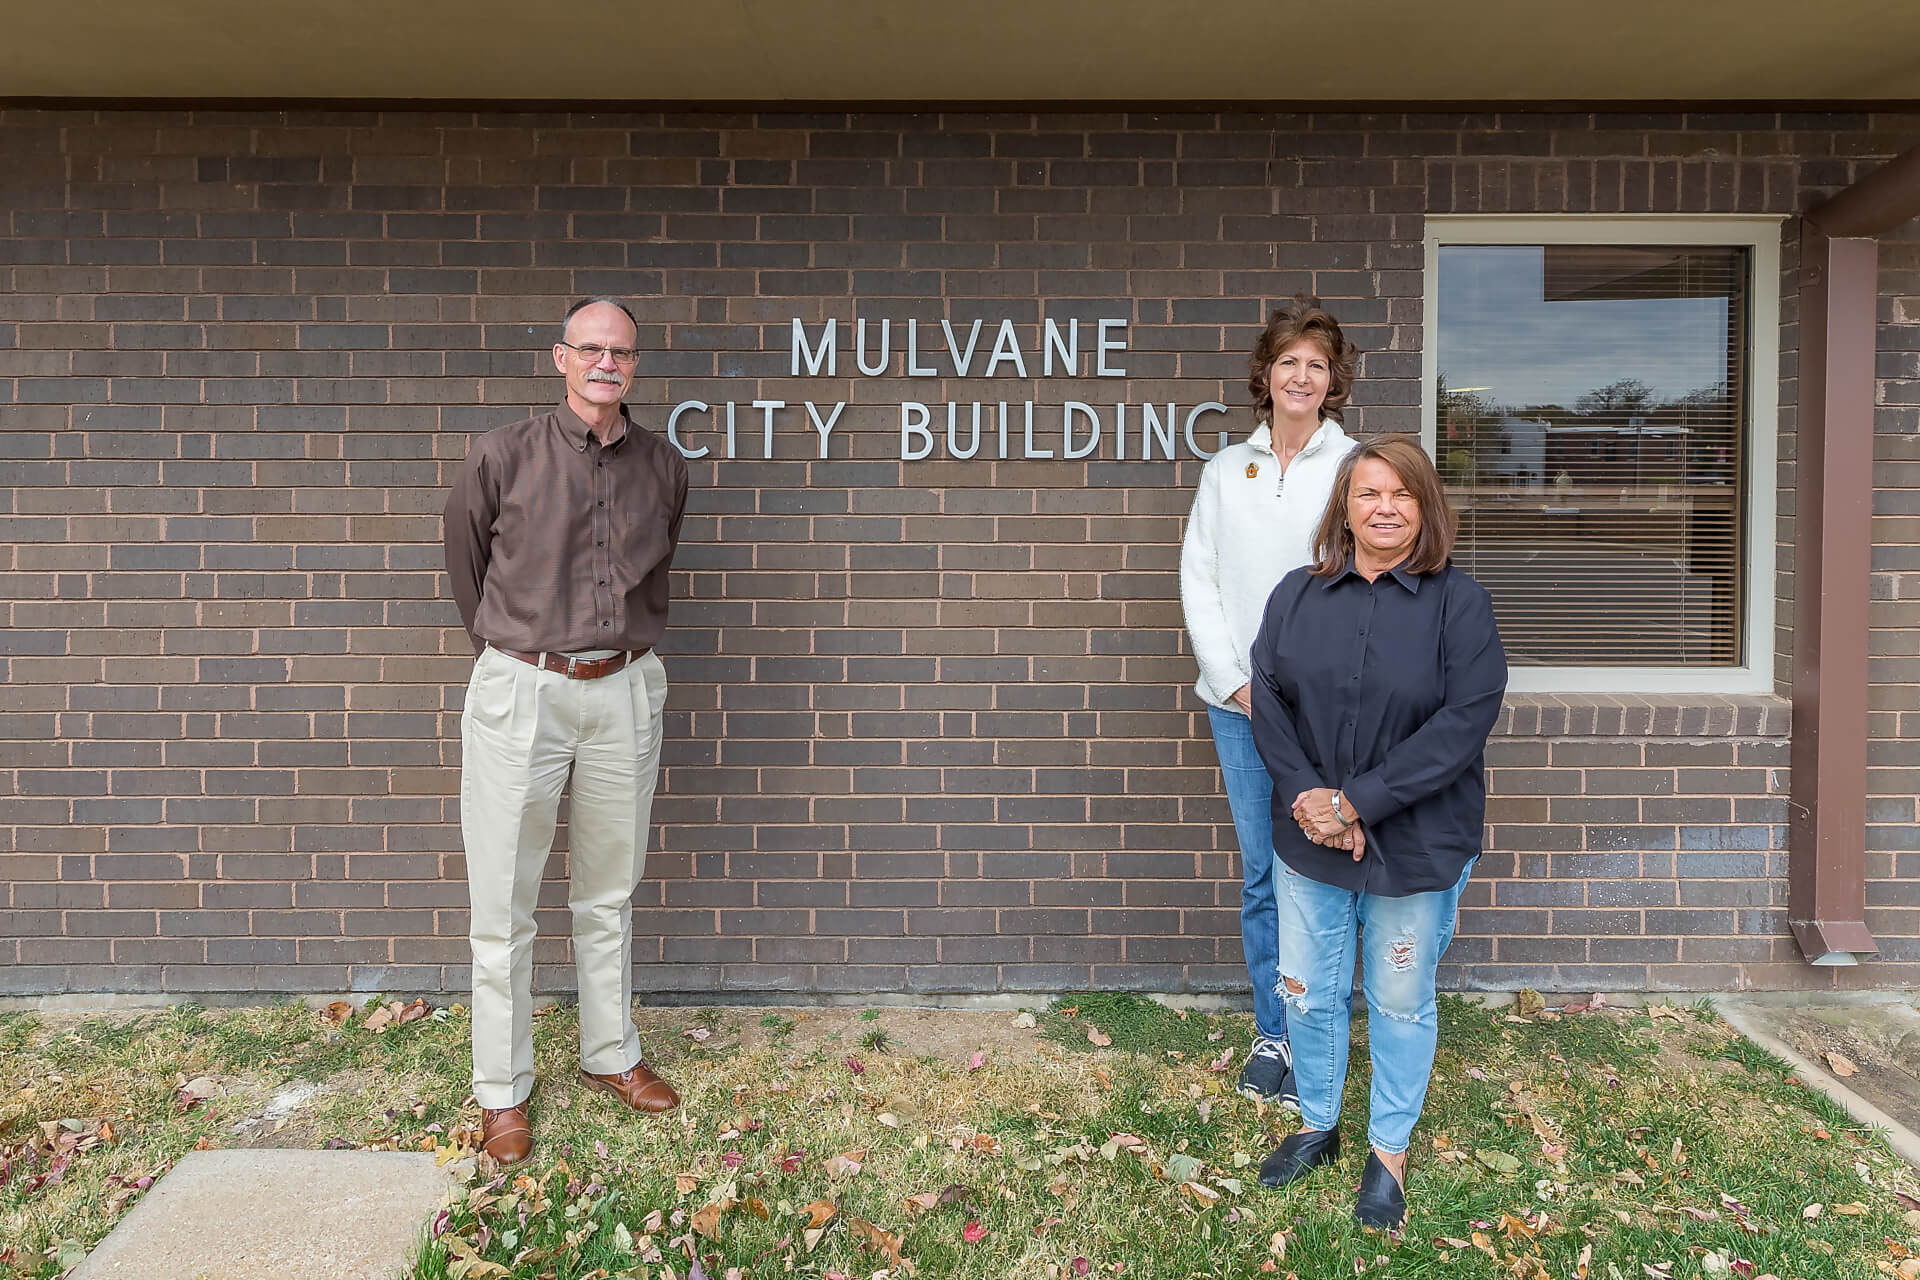 Mulvane City Members Standing In Front of Mulvane City Building